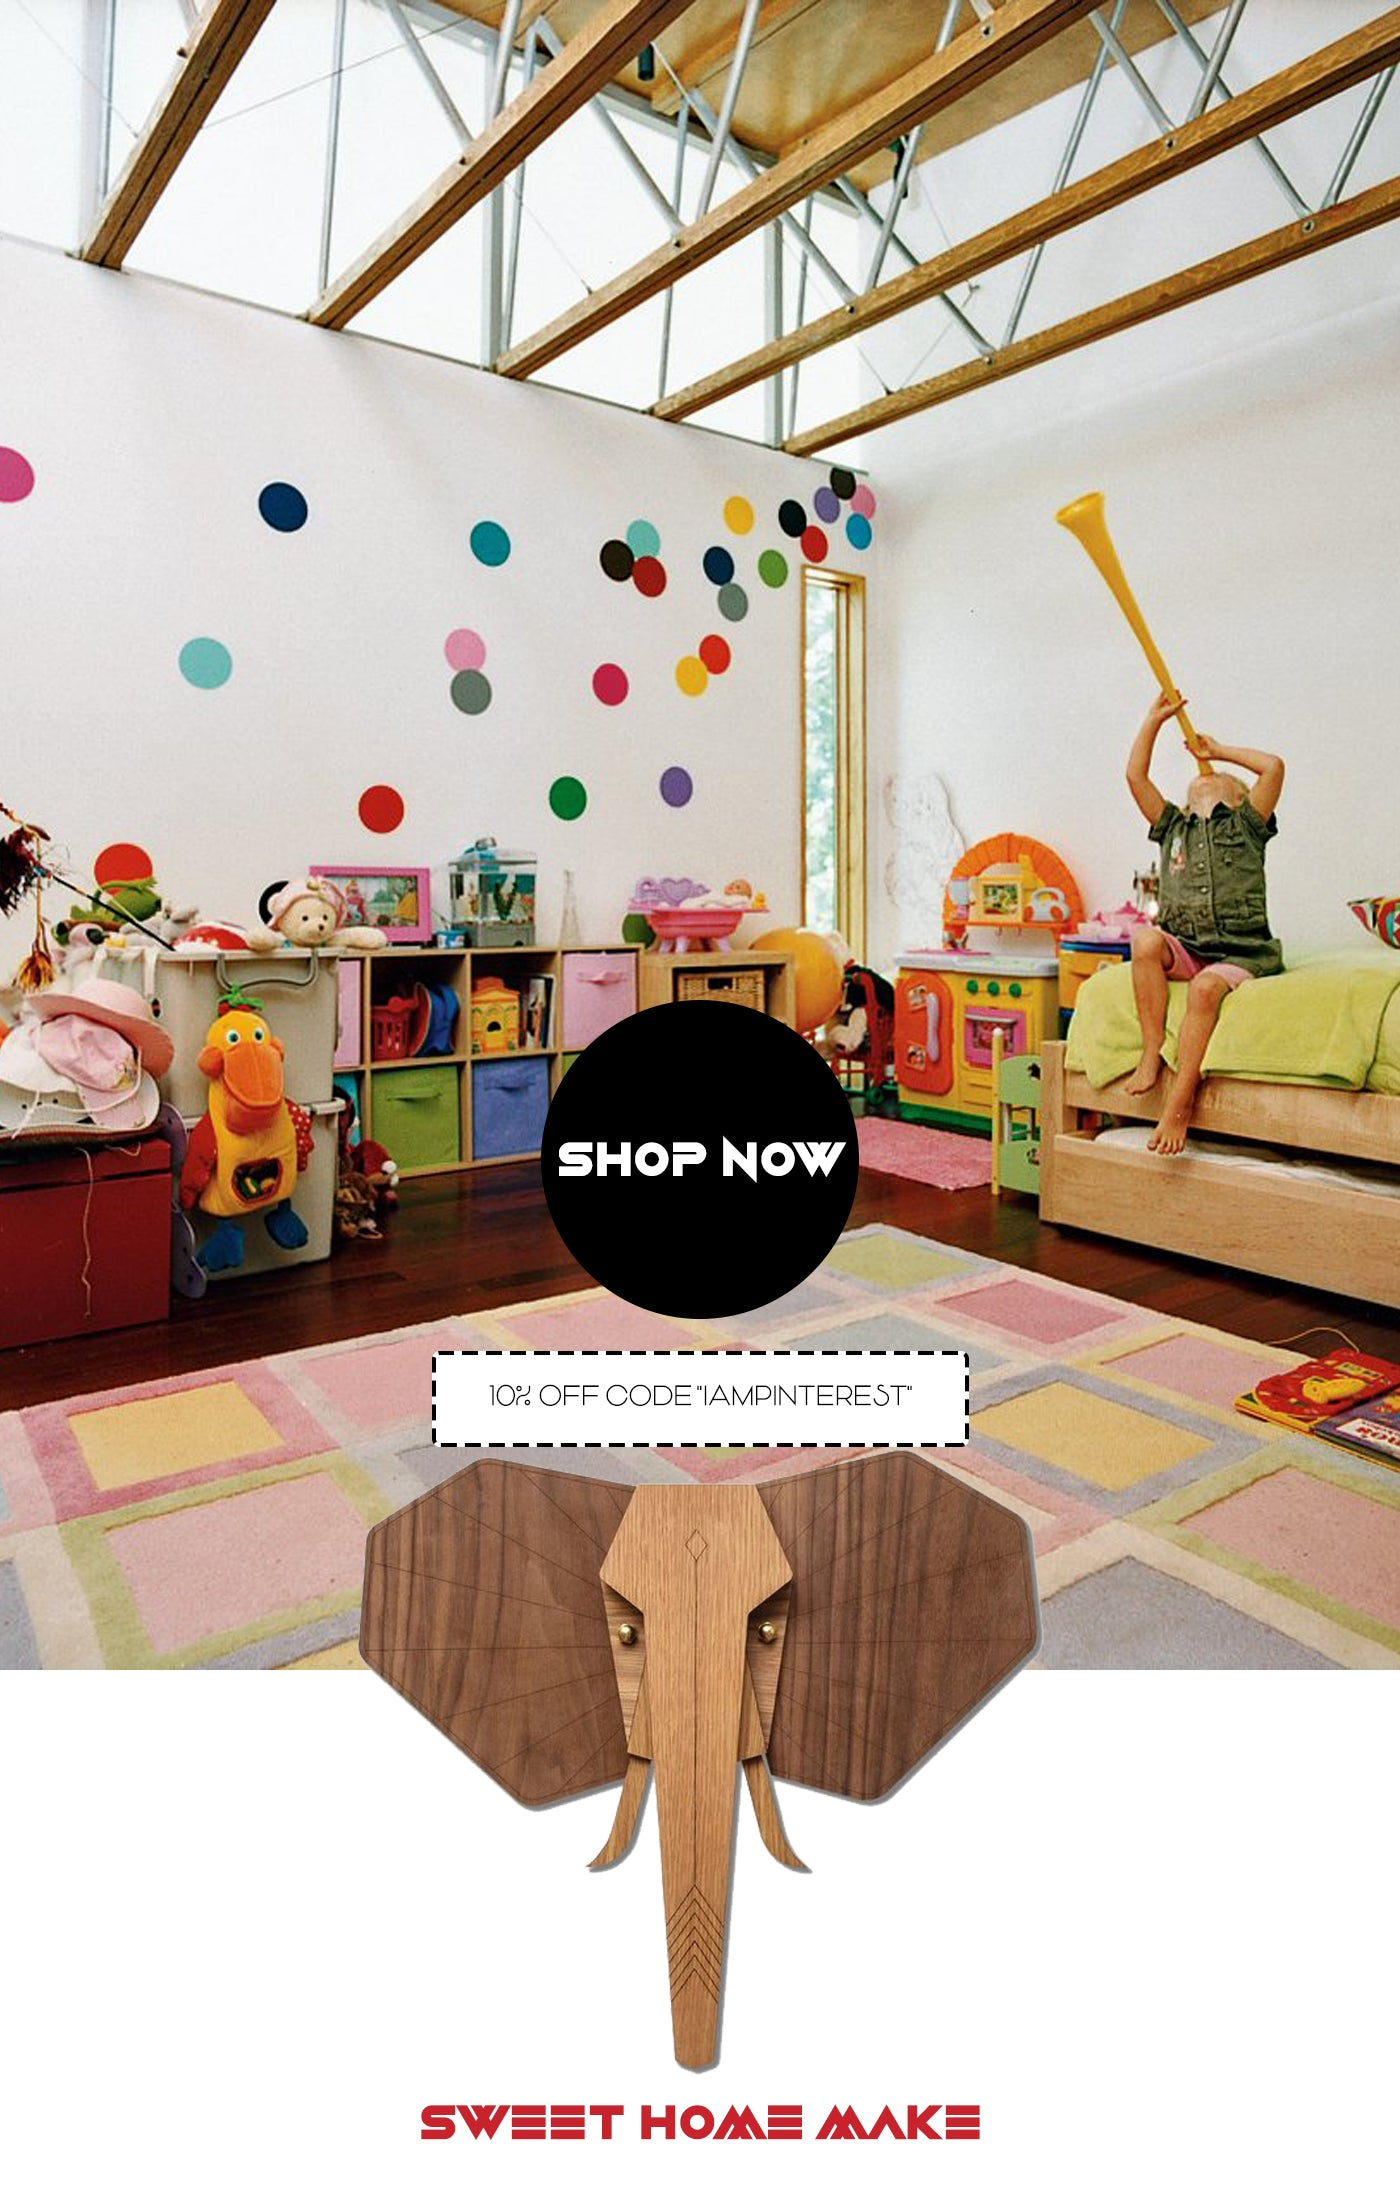 Elephant Wood Carving Wall Art for Nursery and Kids Room Decor